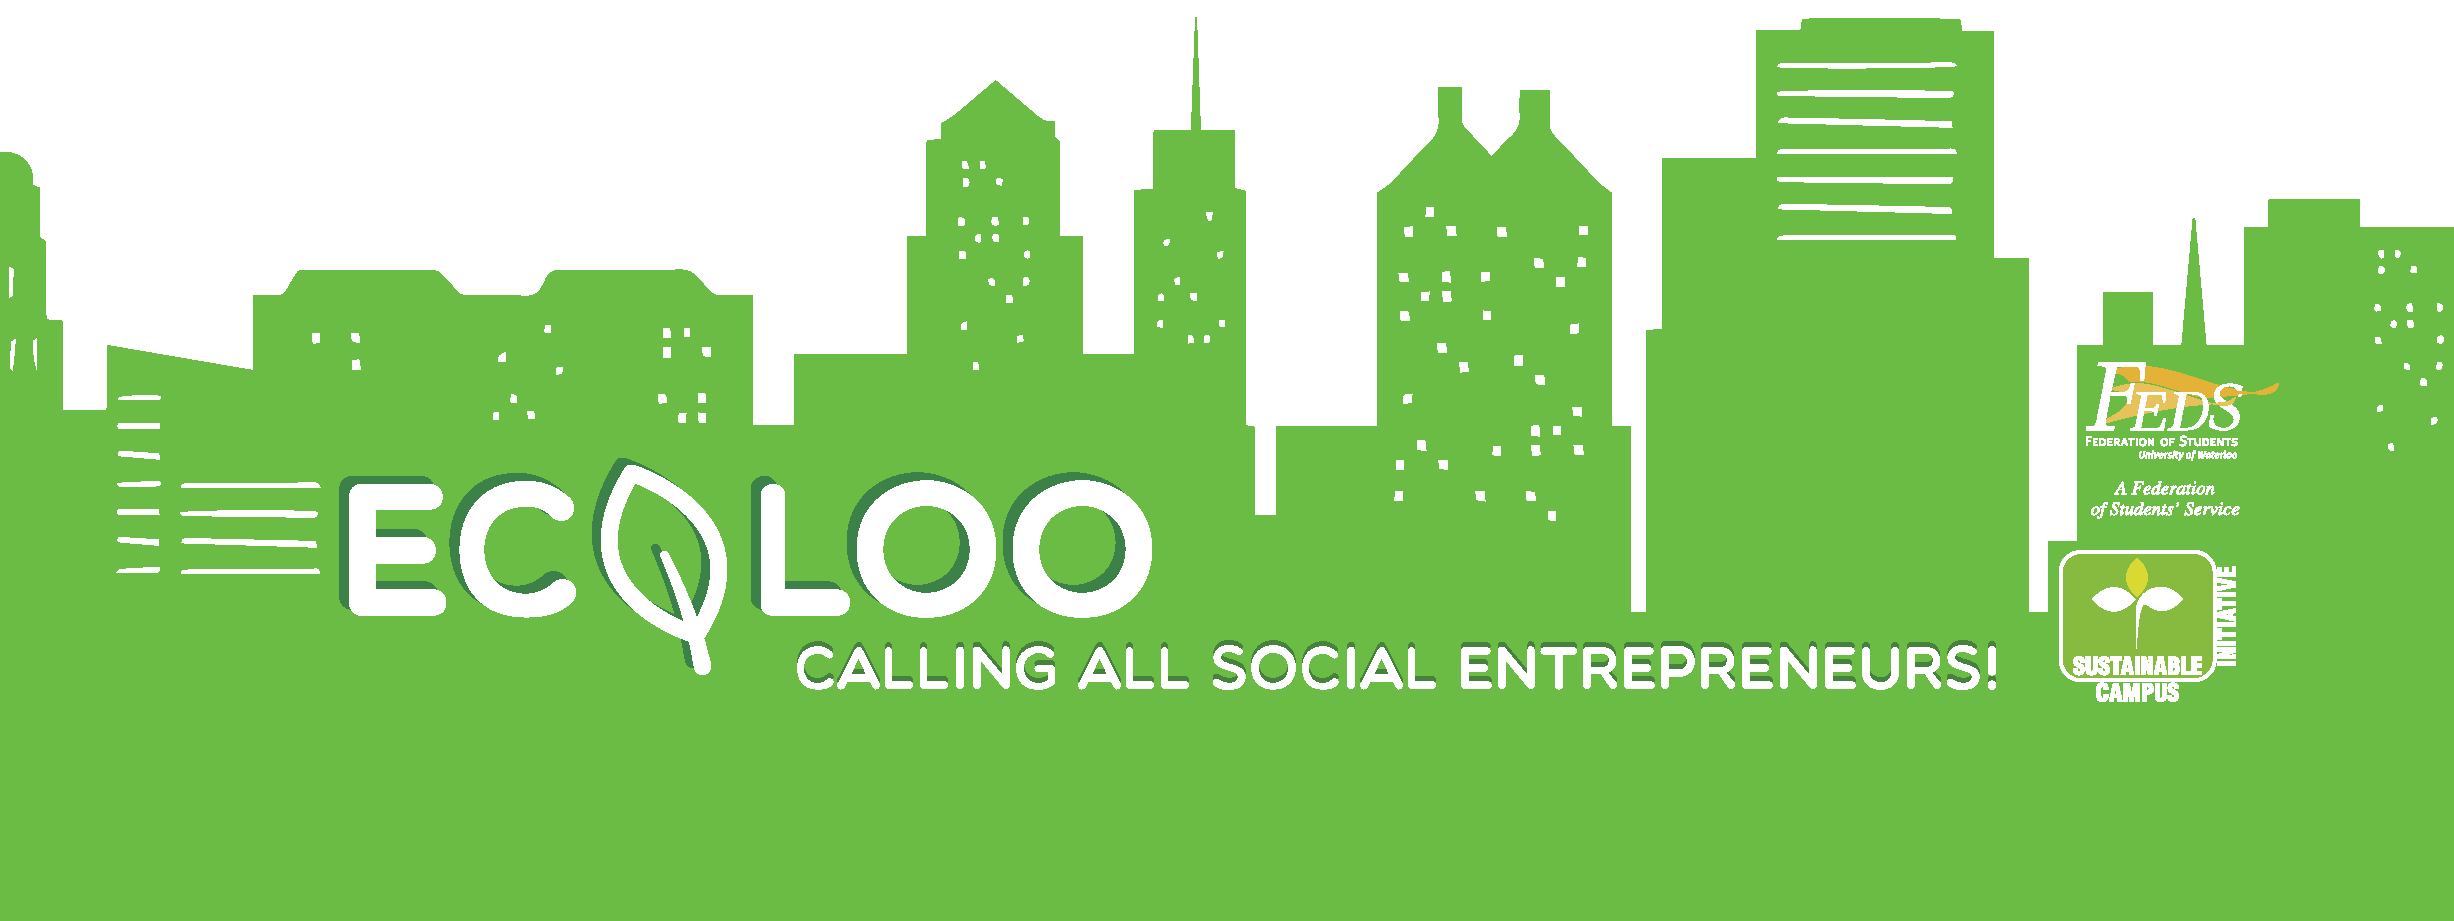 ECOLOO Pitch Contest